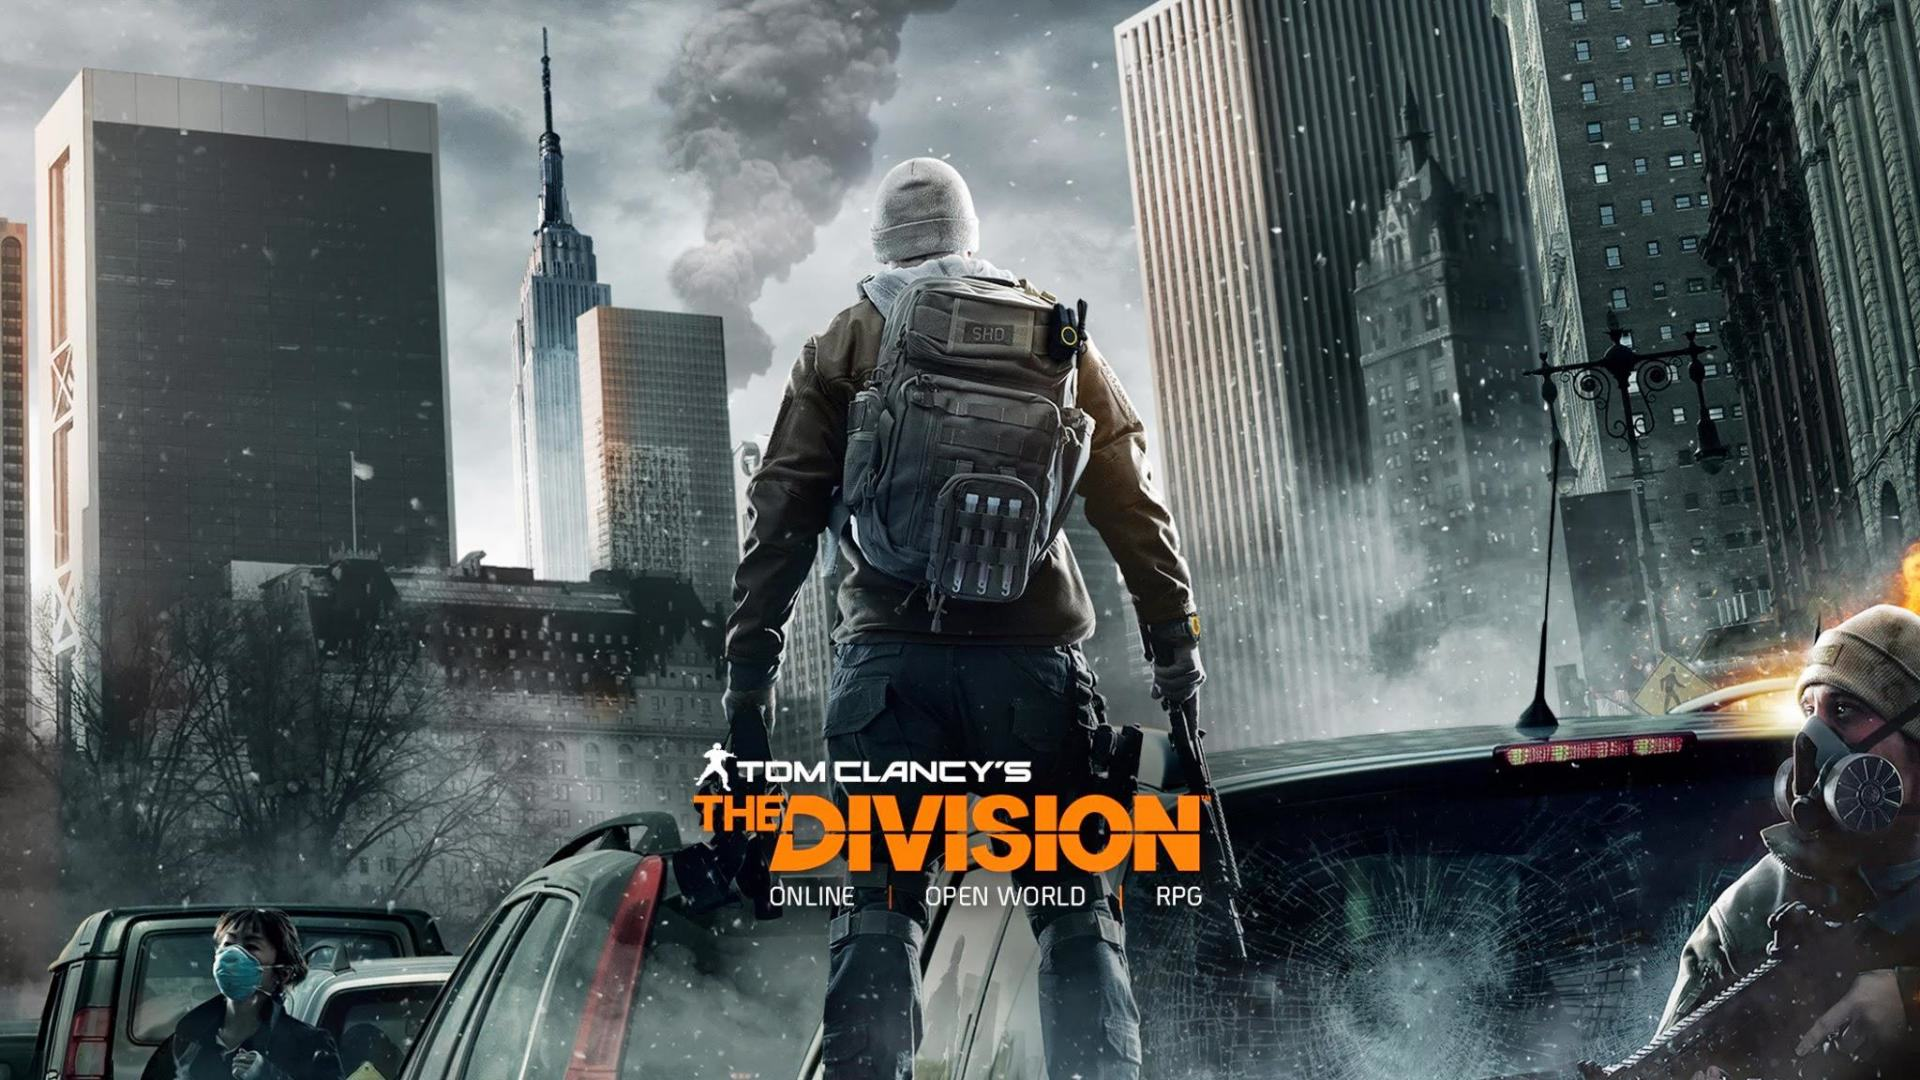 We Had An Exclusive Look At The Division Ahead Of Release Day %name